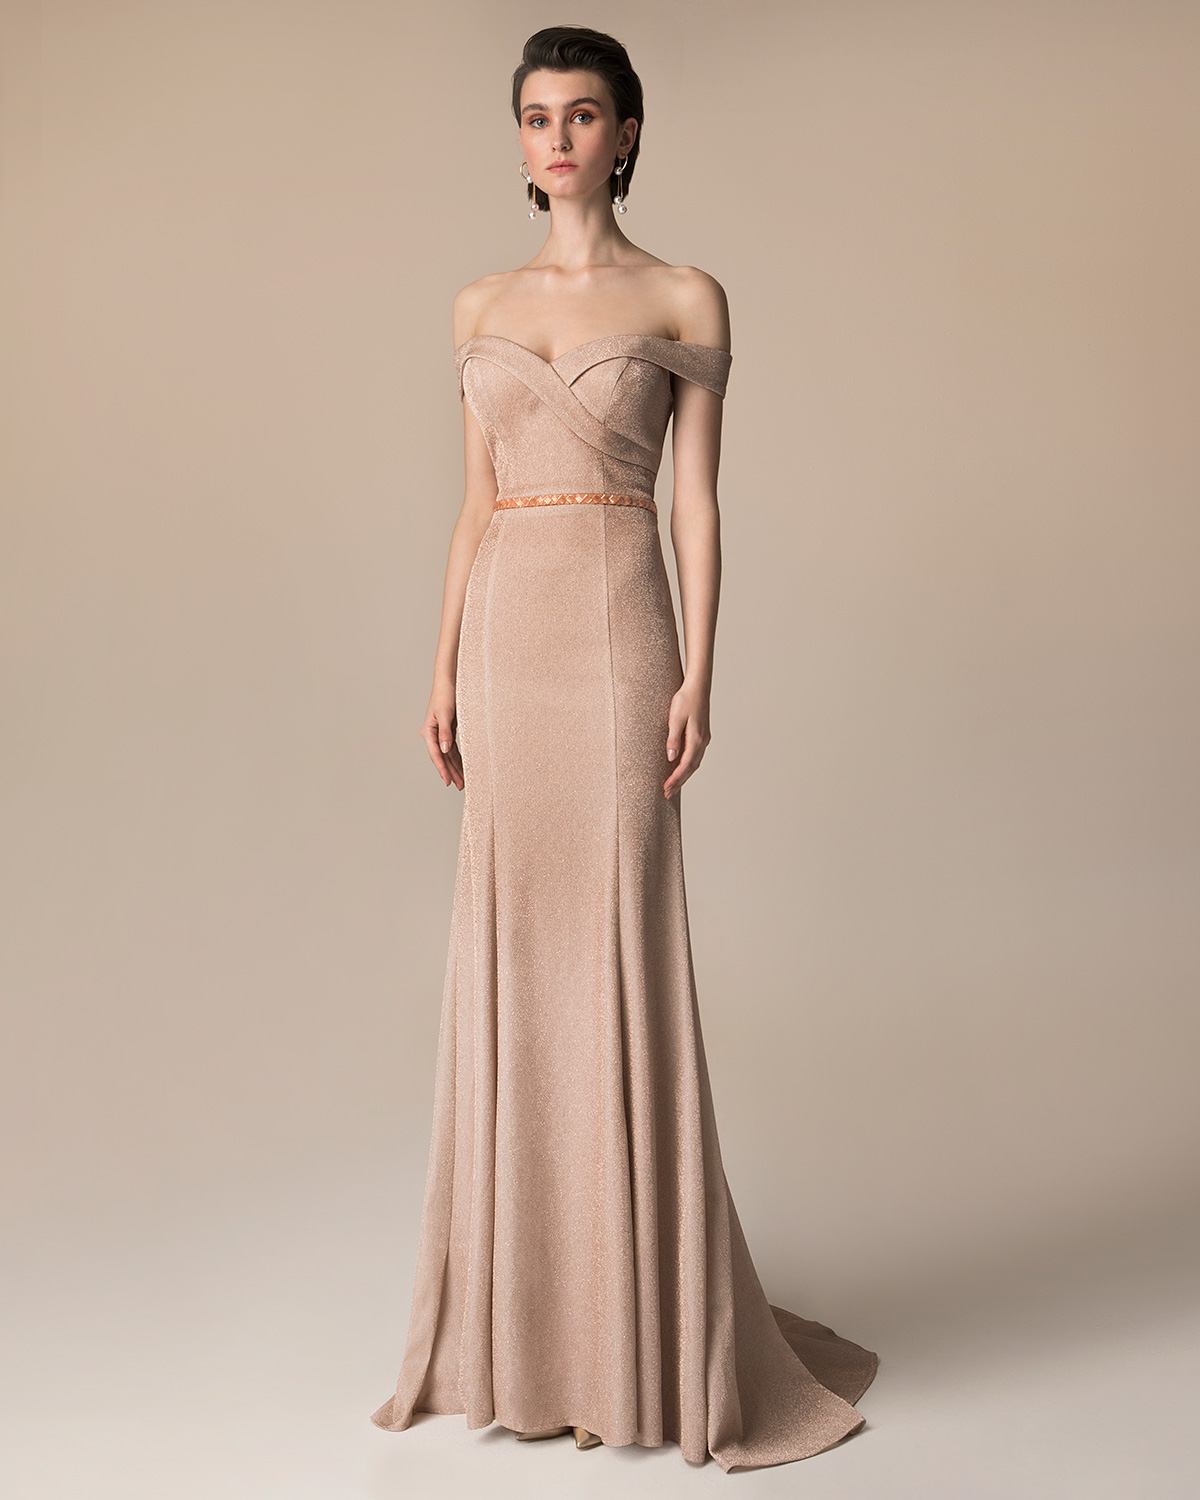 Evening Dresses / Long evening dress with beaded belt and shining fabric